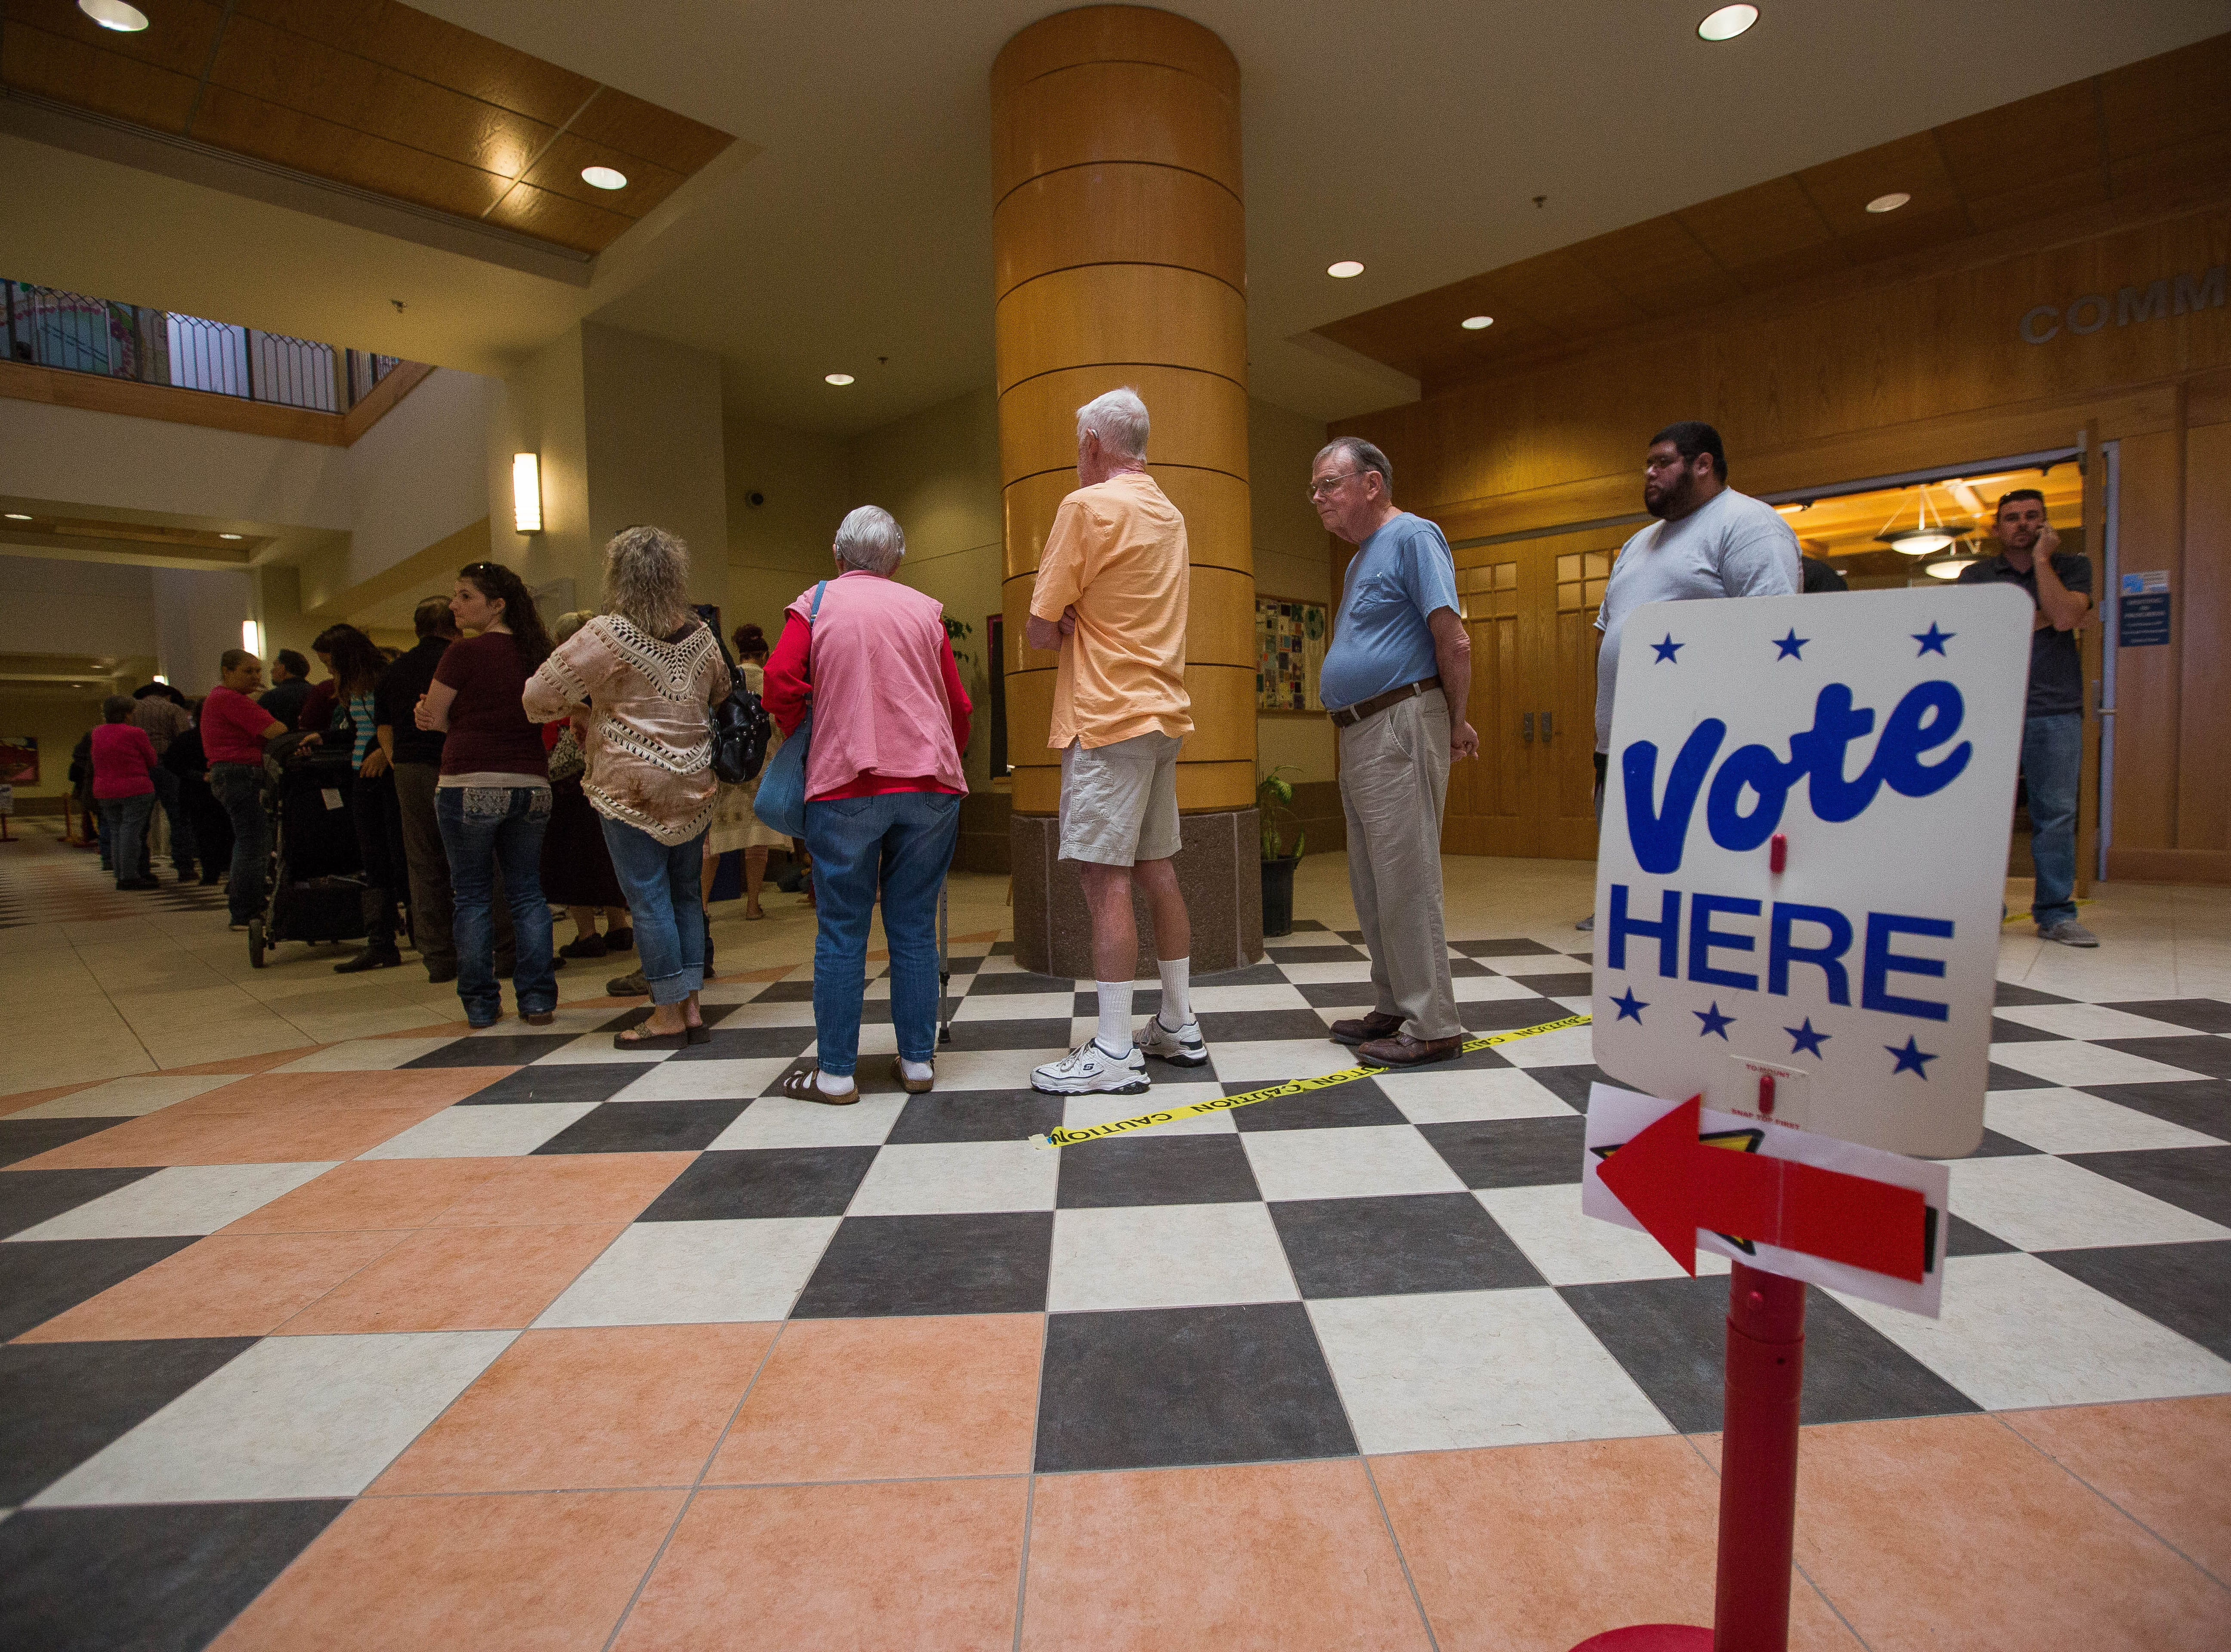 Voters line up at the Doña Ana County Government Building on Tuesday Nov. 6, 2018 to cast a ballot in the midterm elections.